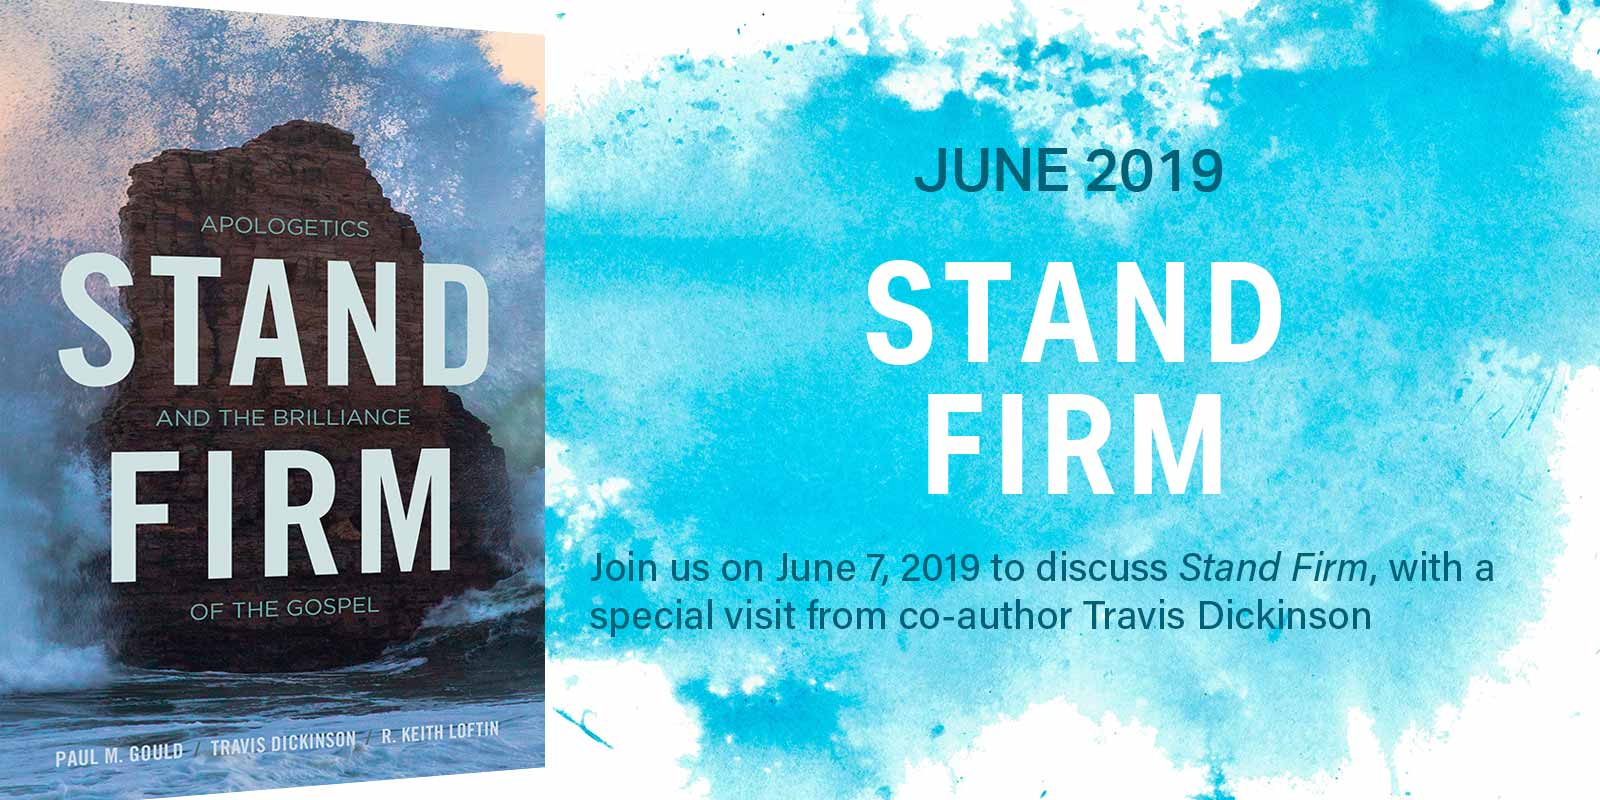 Join us on 6/7/19 to discuss Stand Firm